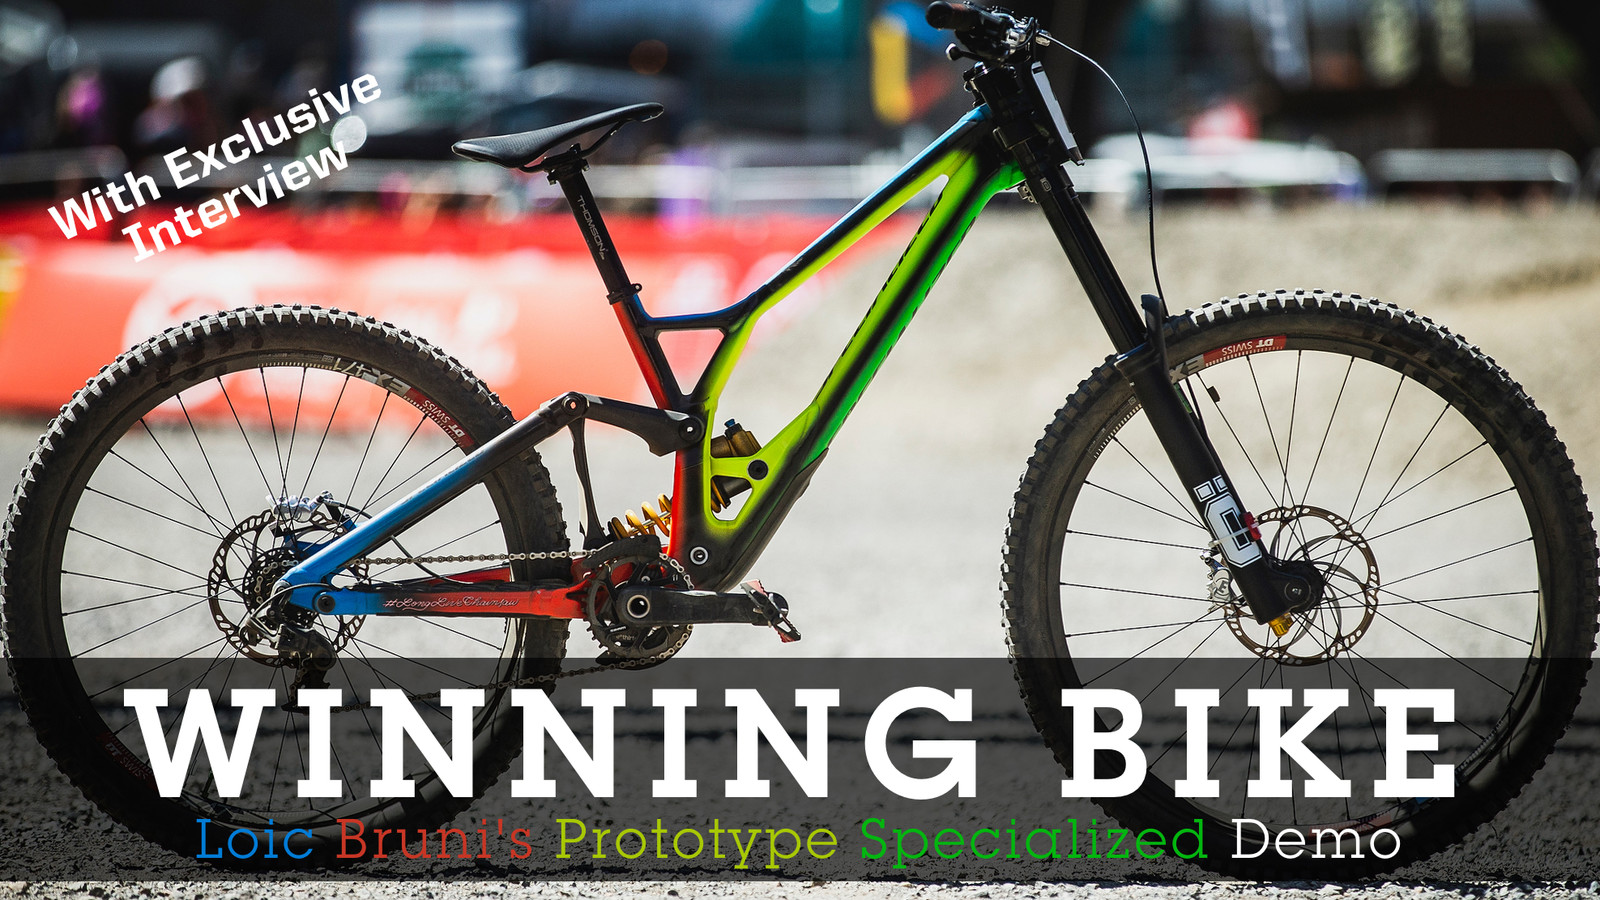 WINNING BIKE - Loic Bruni's Prototype Specialized Demo - Mountain